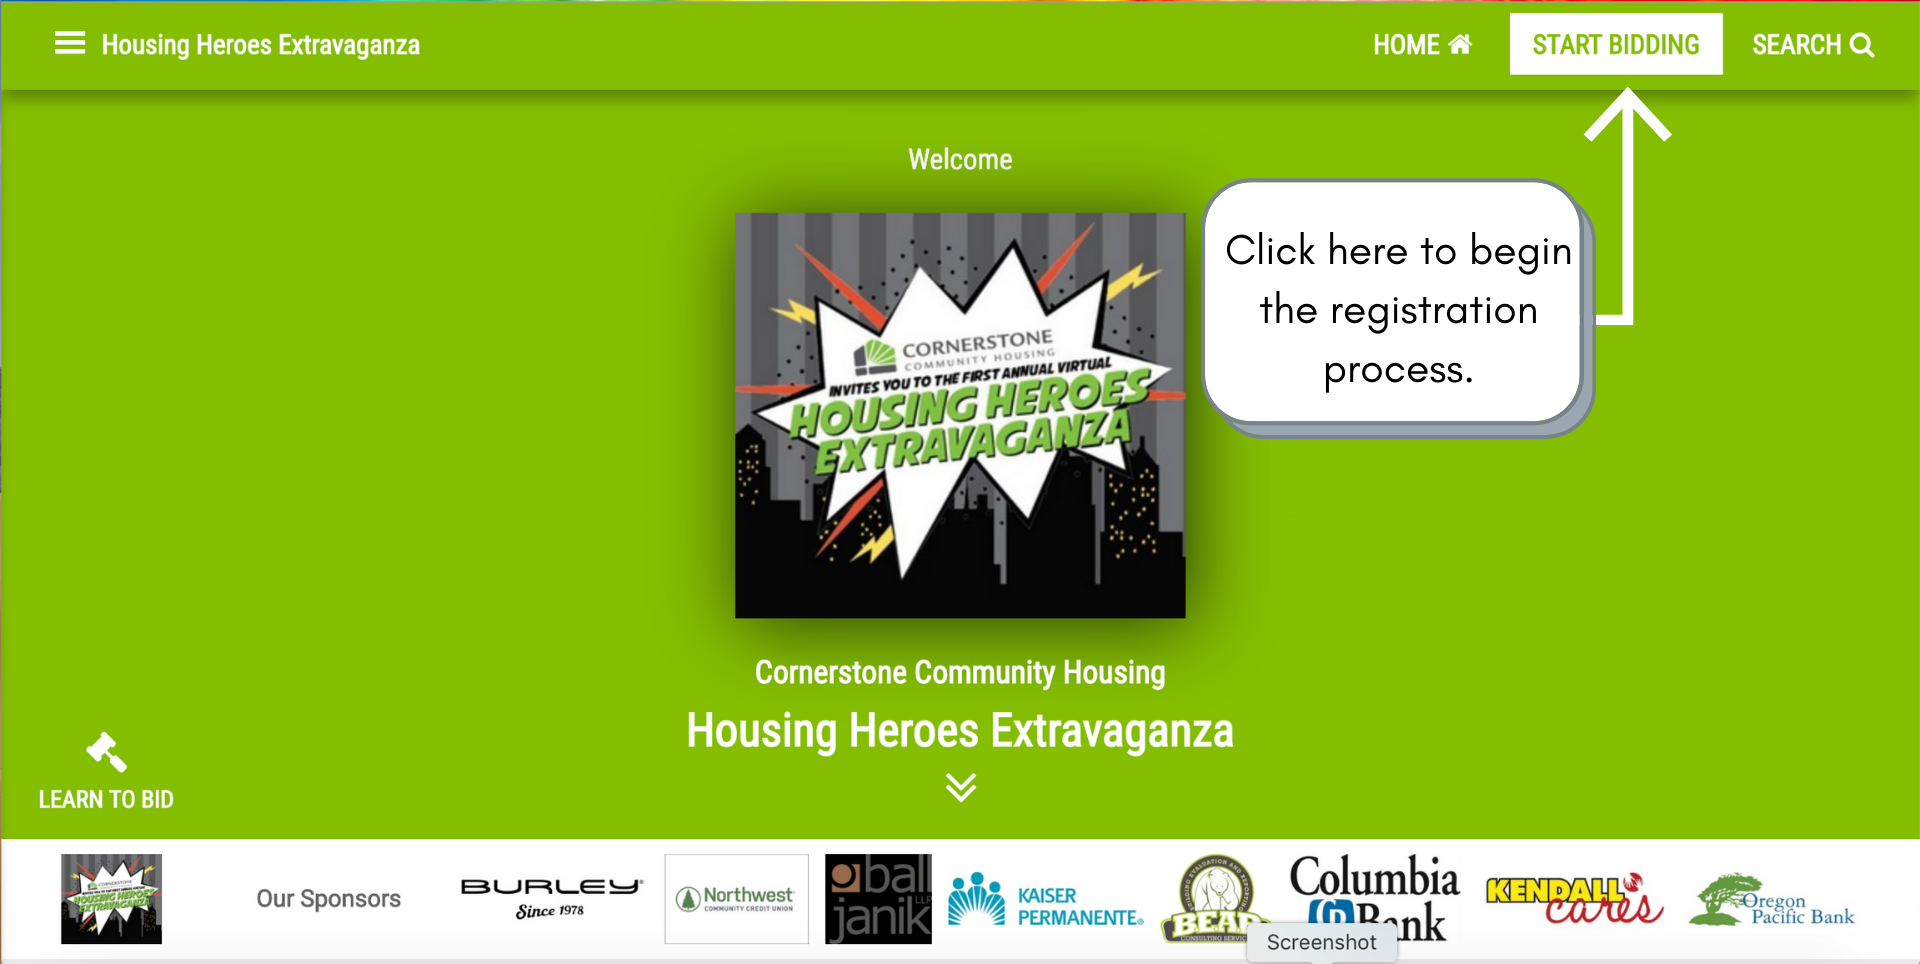 How To Register For The Housing Heroes Extravaganza (Step By Step)